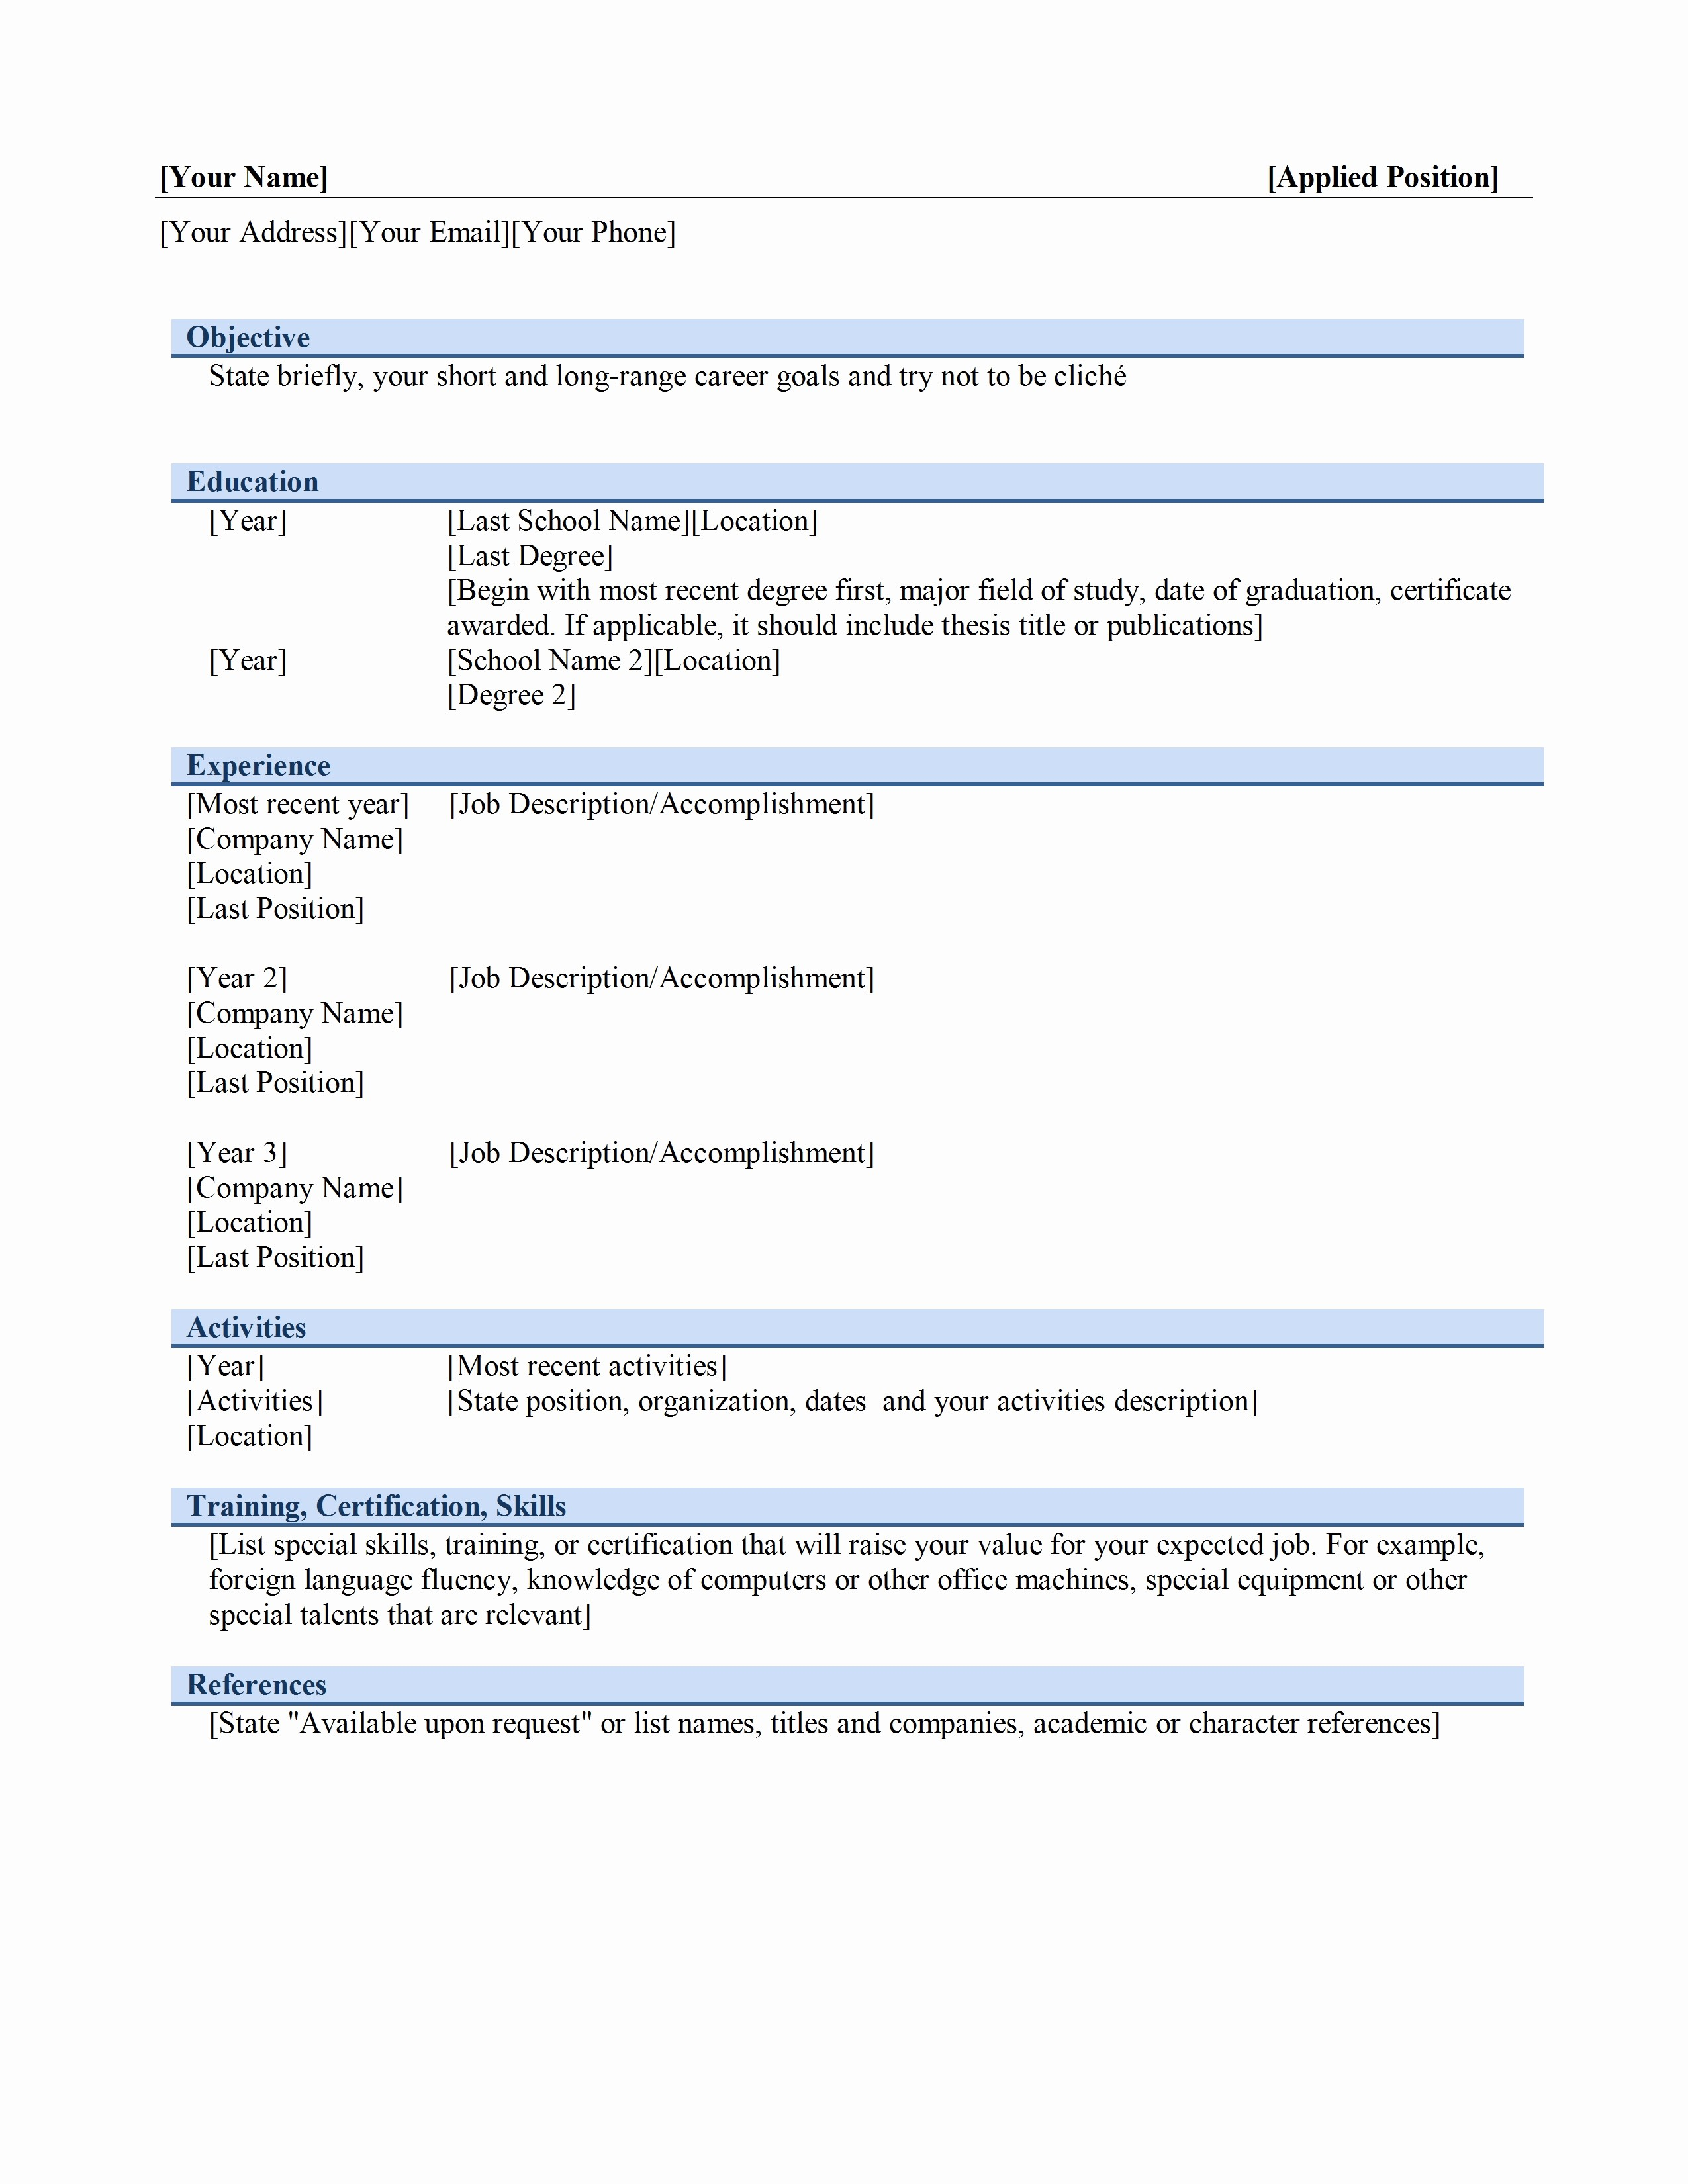 Resume Templates Free Microsoft Word Luxury Chronological Resume Template